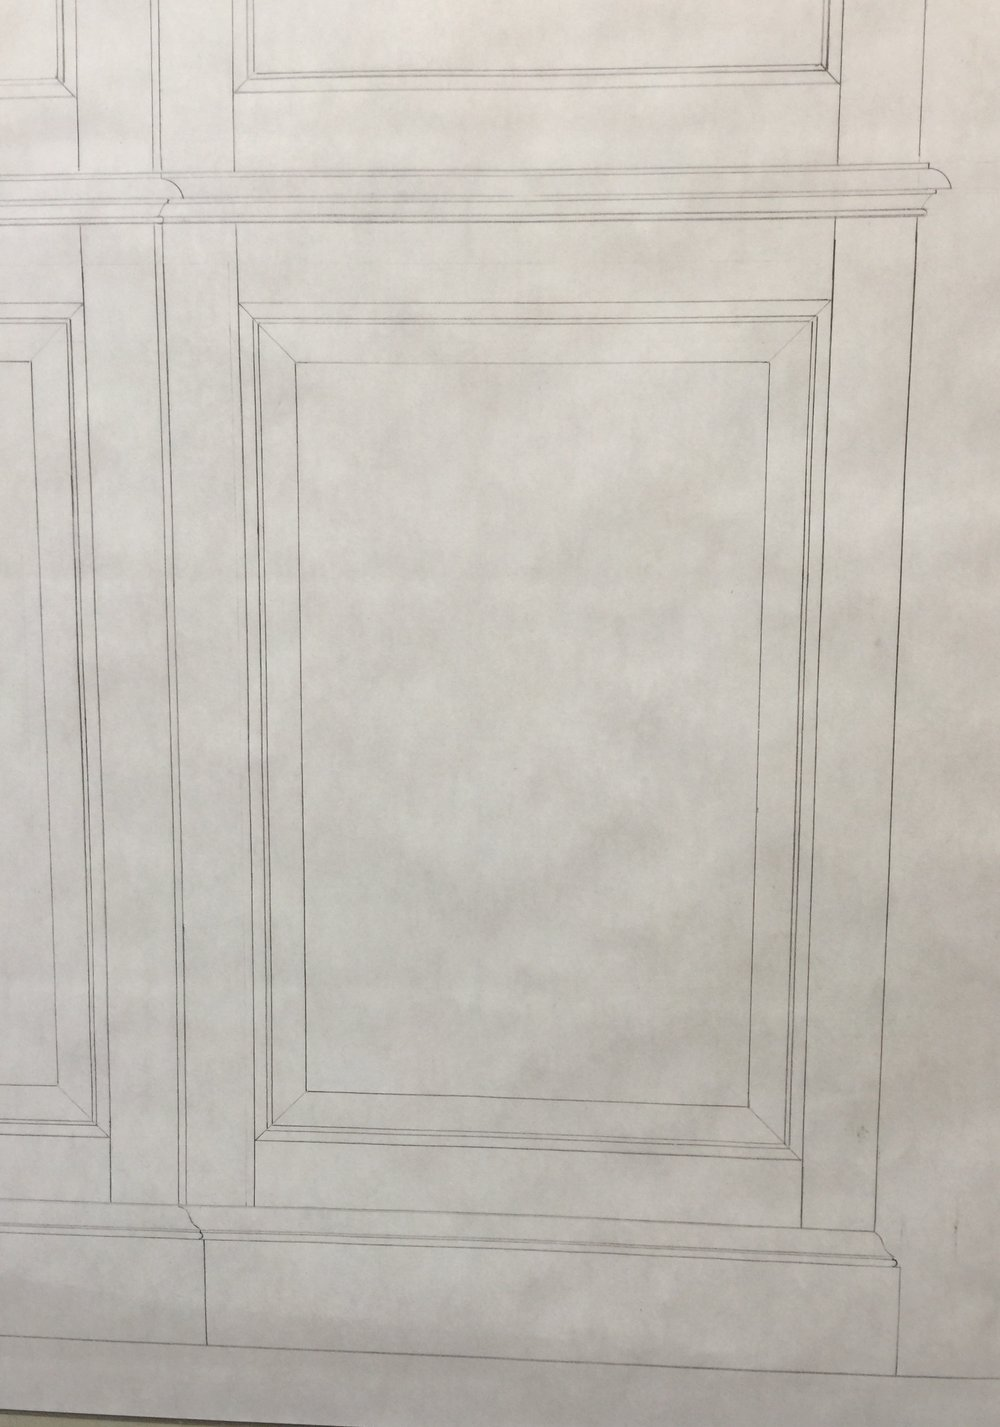 Detail of drawing of the lower right door and waist molding and base.